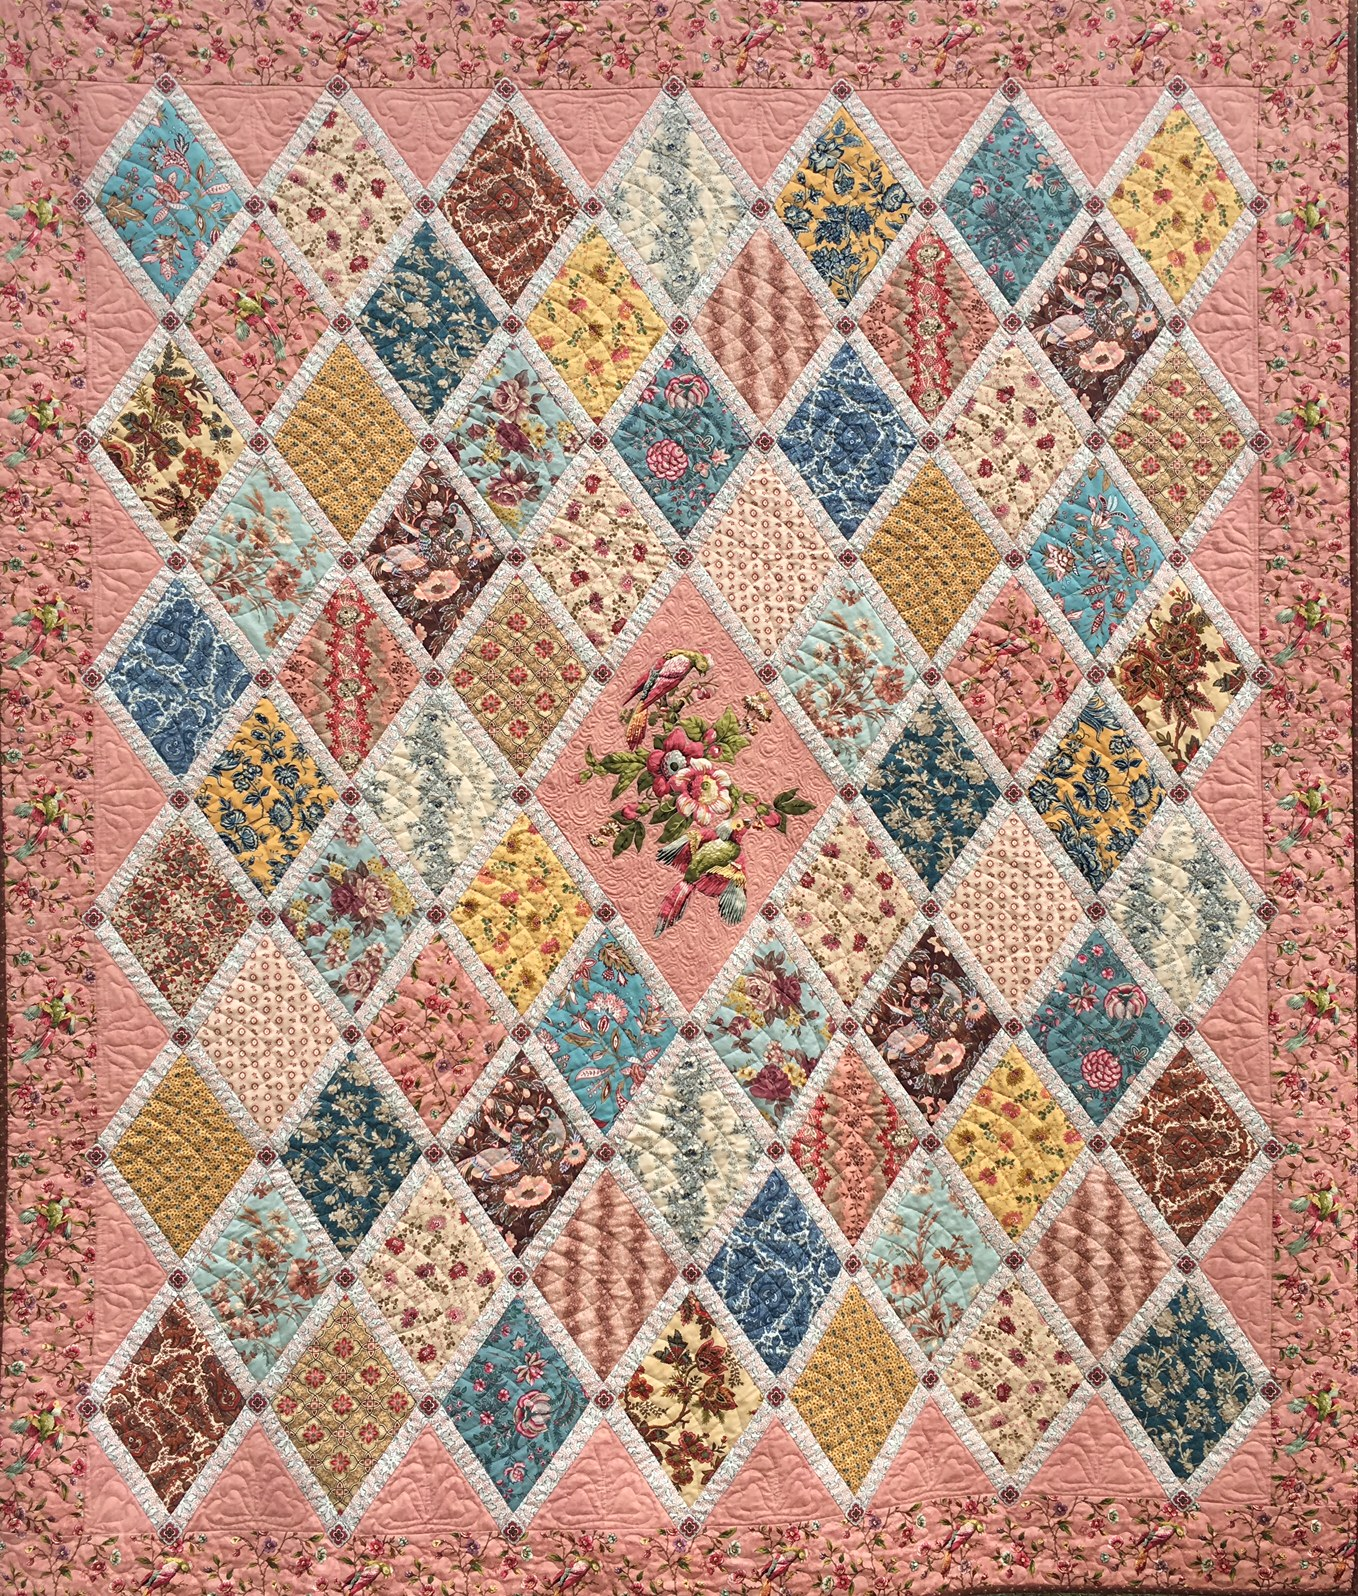 Inspired by Jane Quilt Pattern – design by Shiralee Stitches